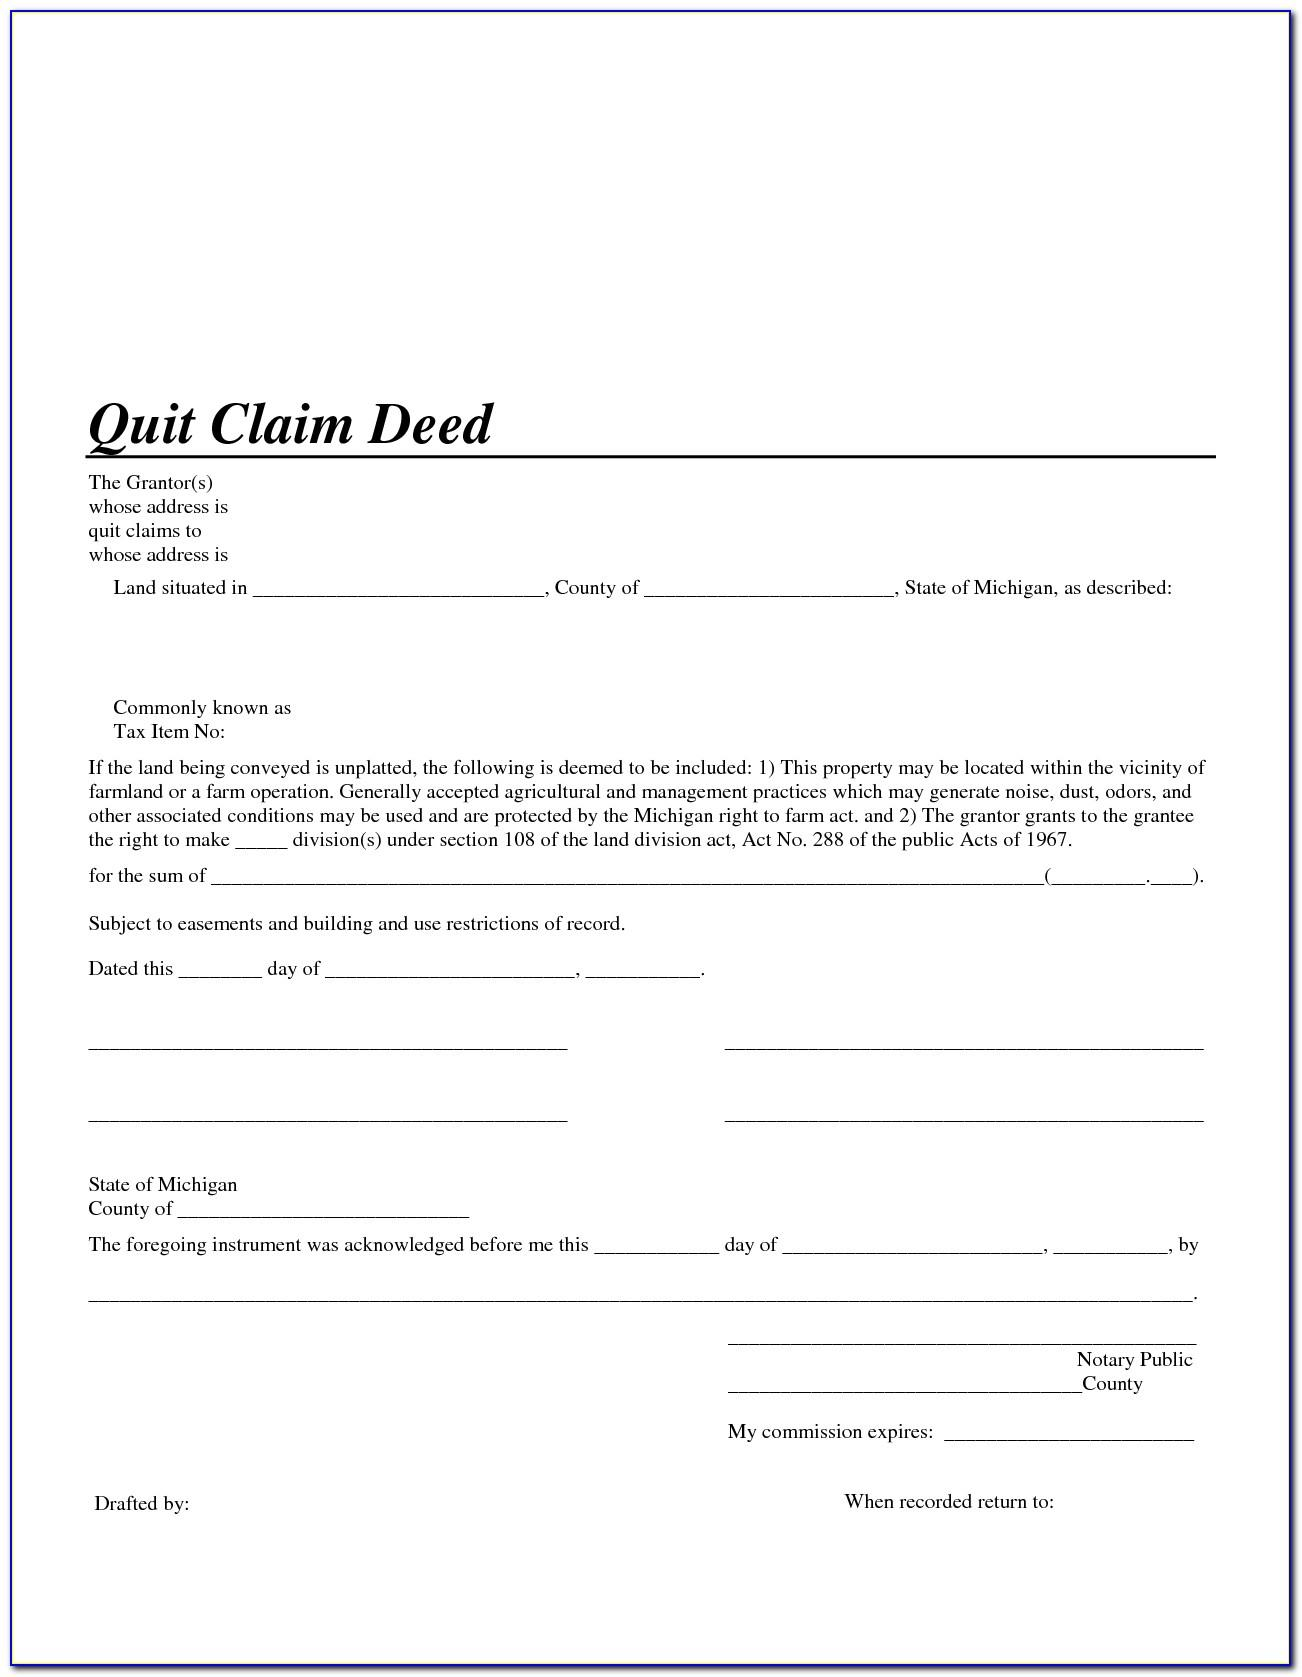 Quit Claim Deed Template Florida